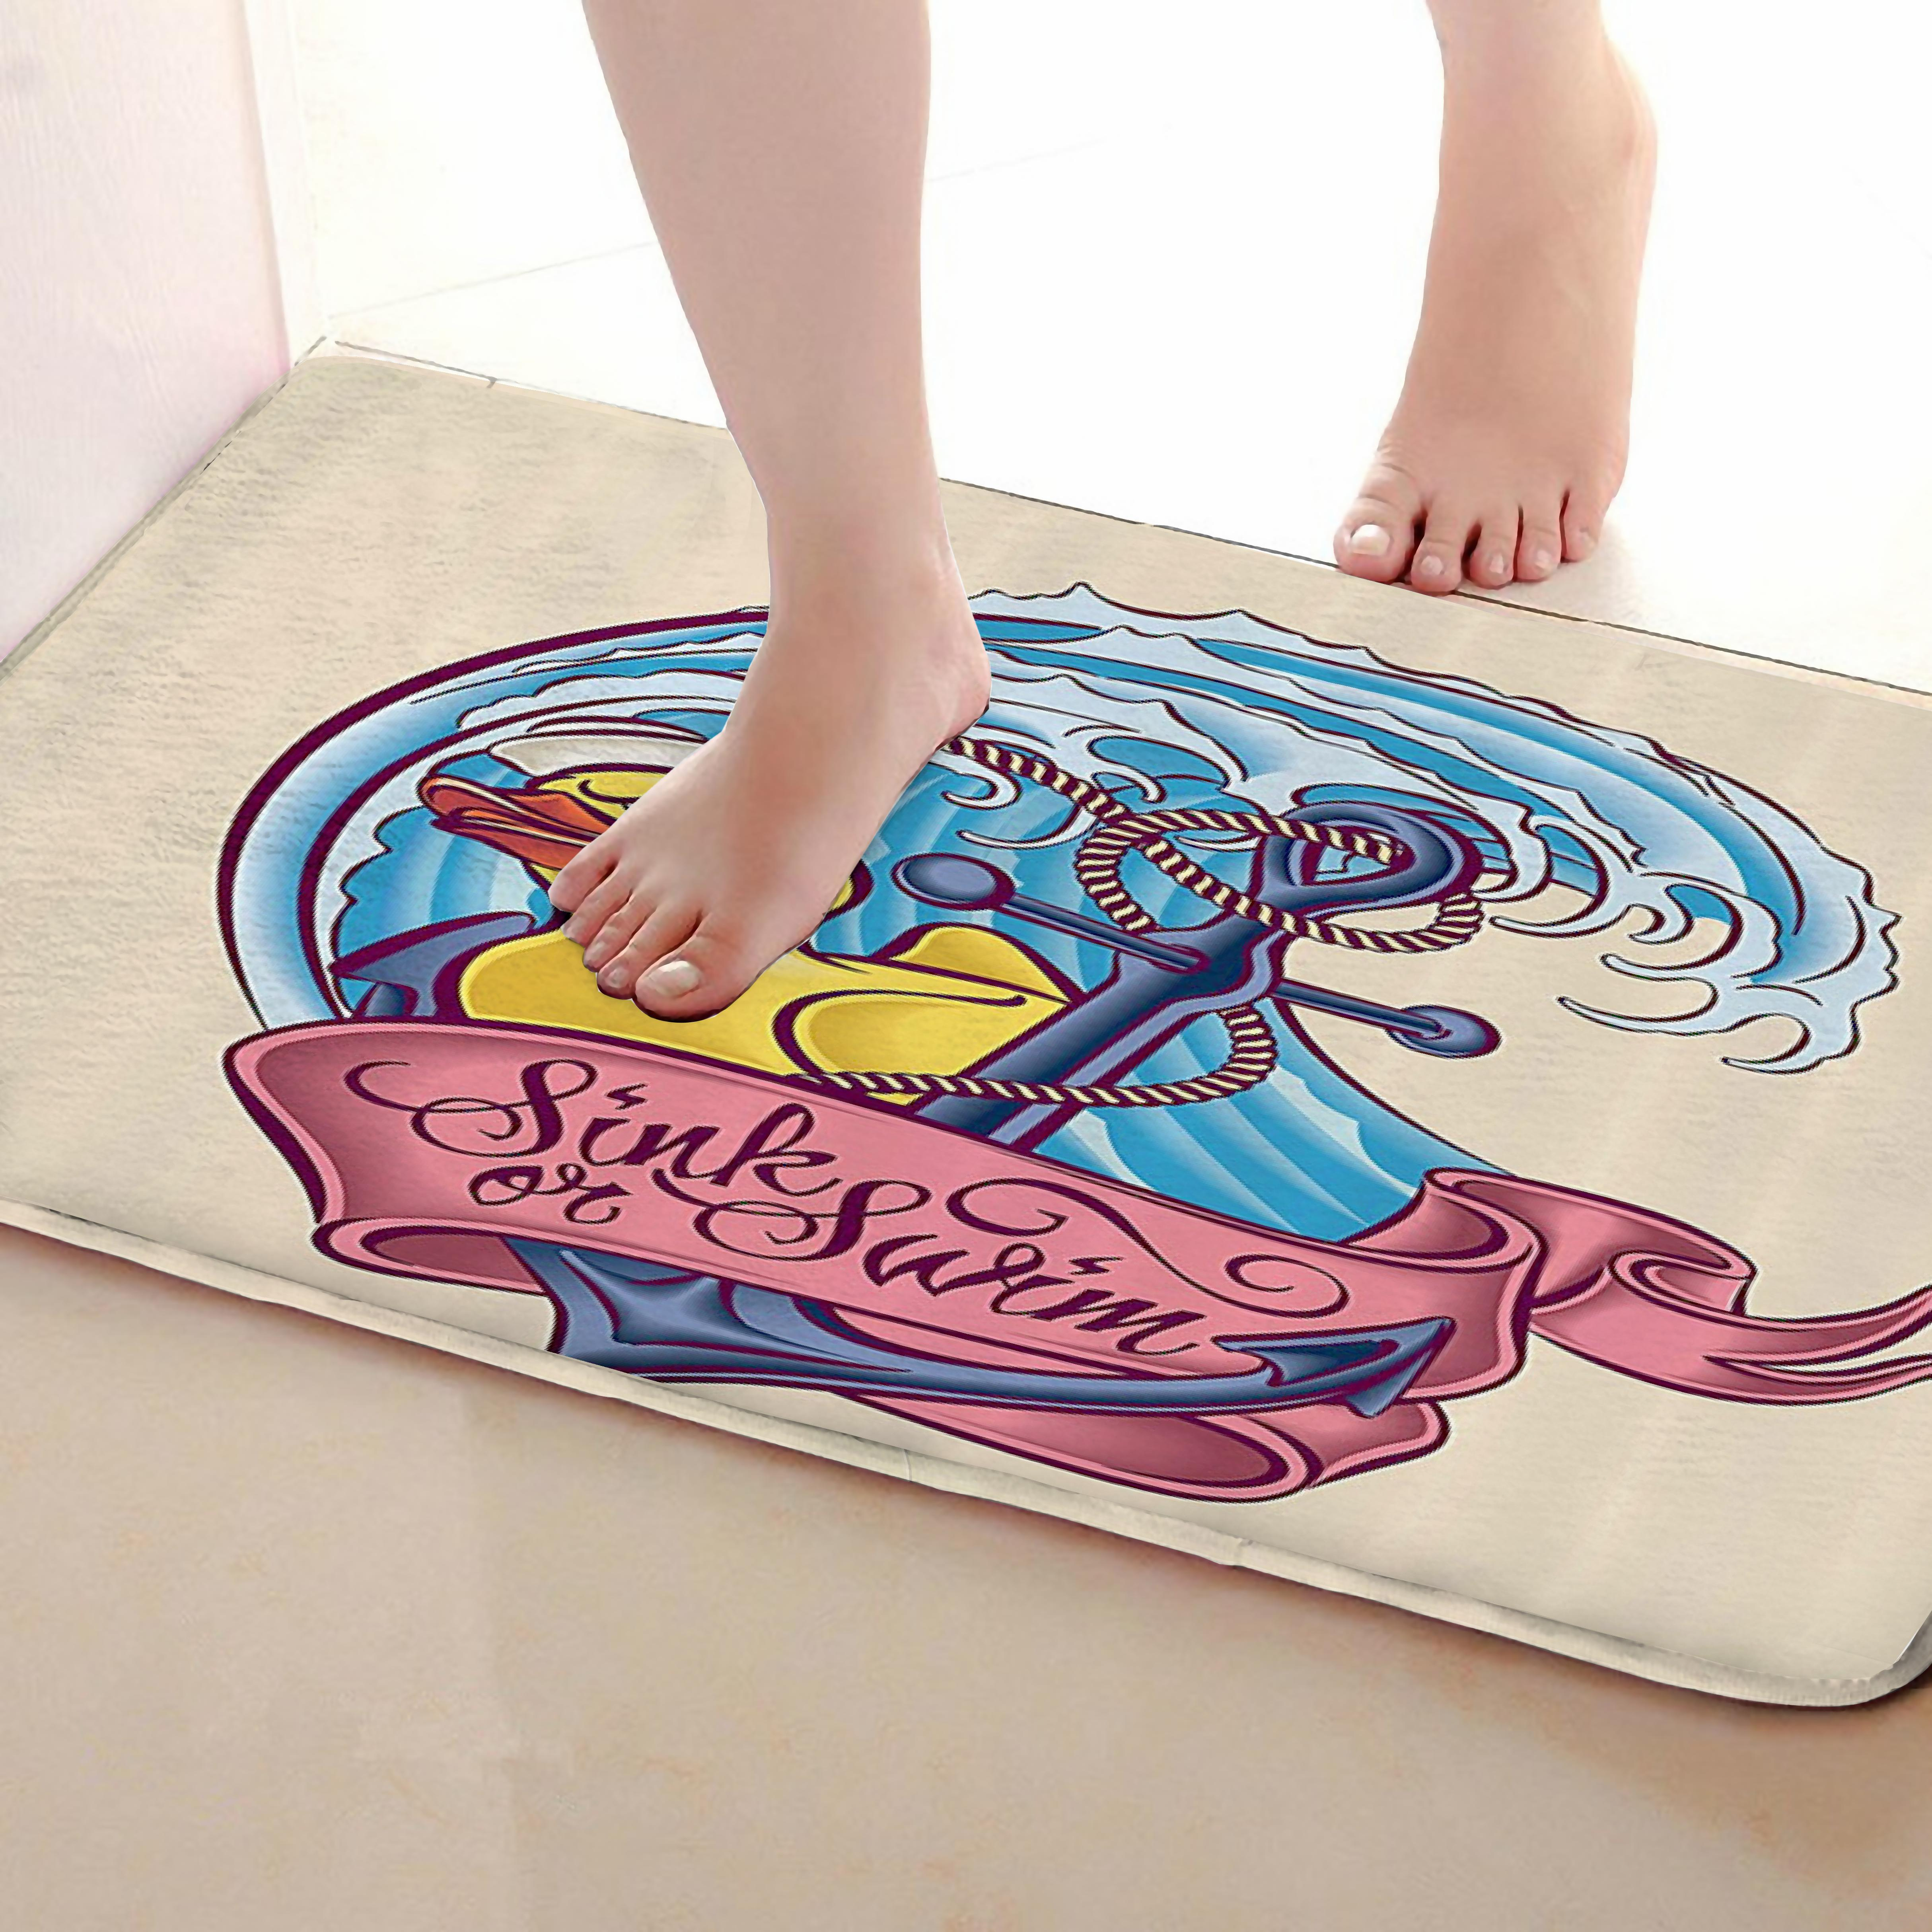 Anchor Style Bathroom Mat,Funny Anti Skid Bath Mat,Shower Curtains Accessories,Matching Your Shower Curtain